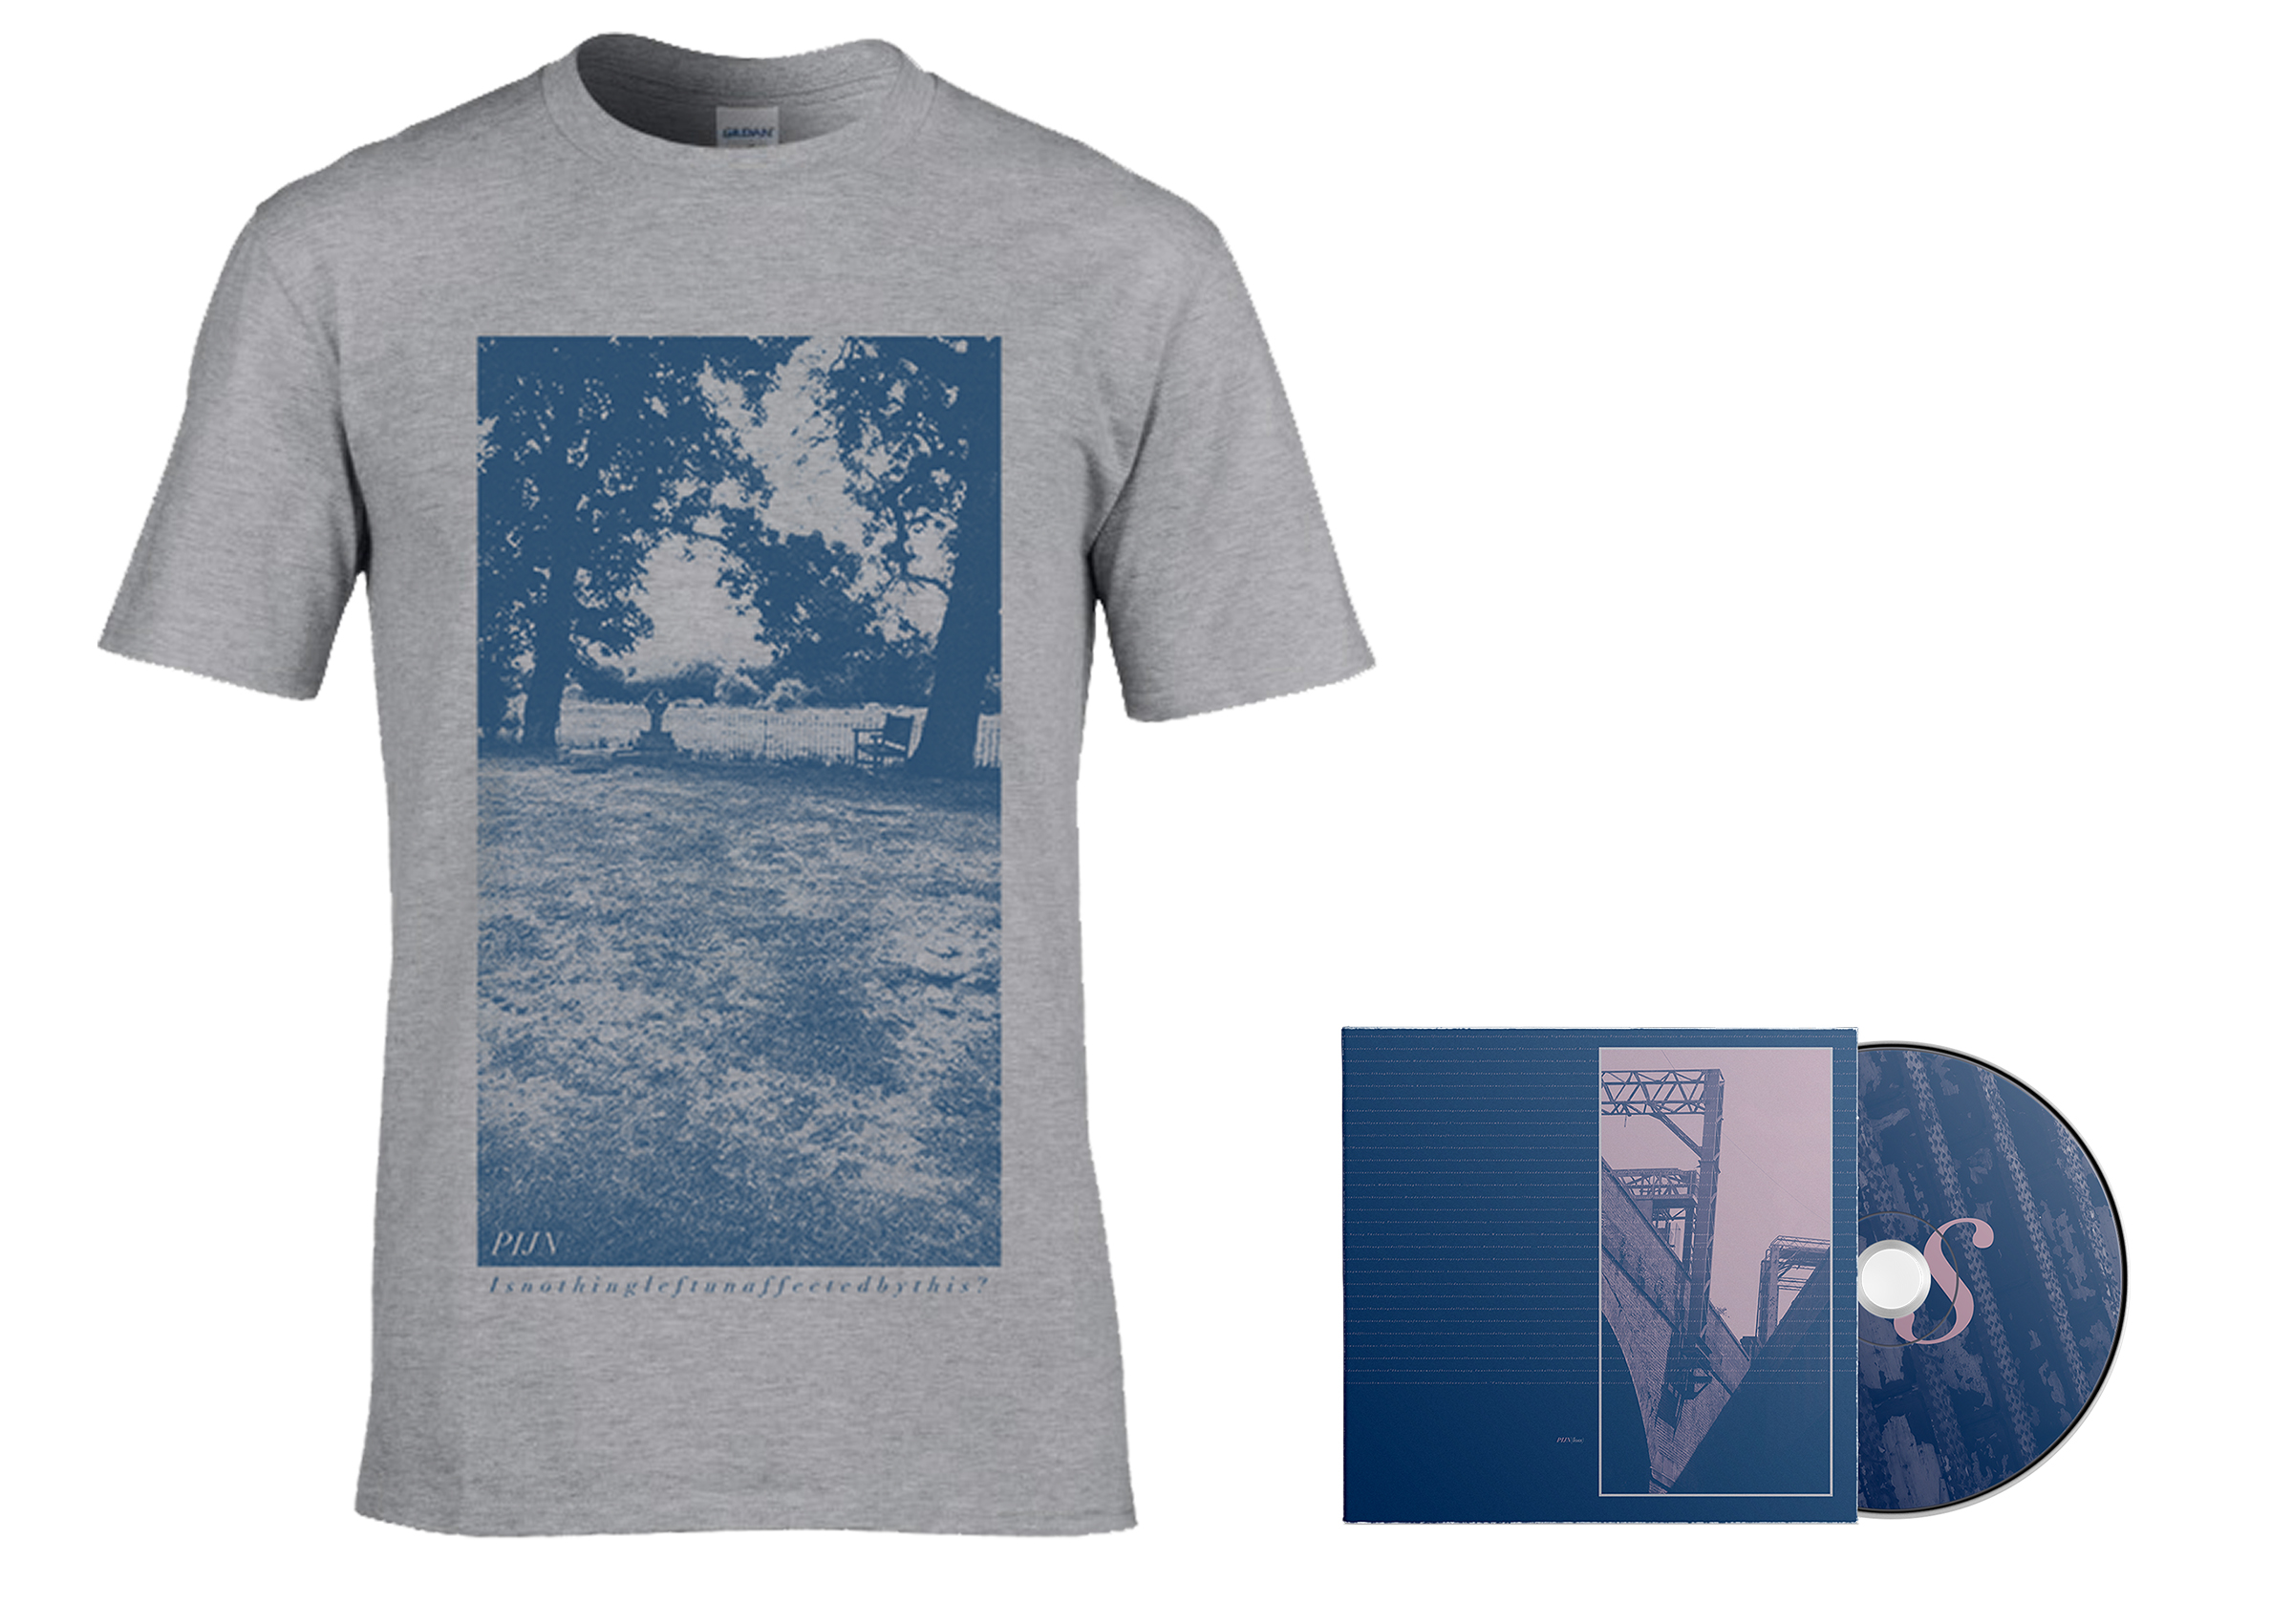 Pijn - Loss grey shirt + CD